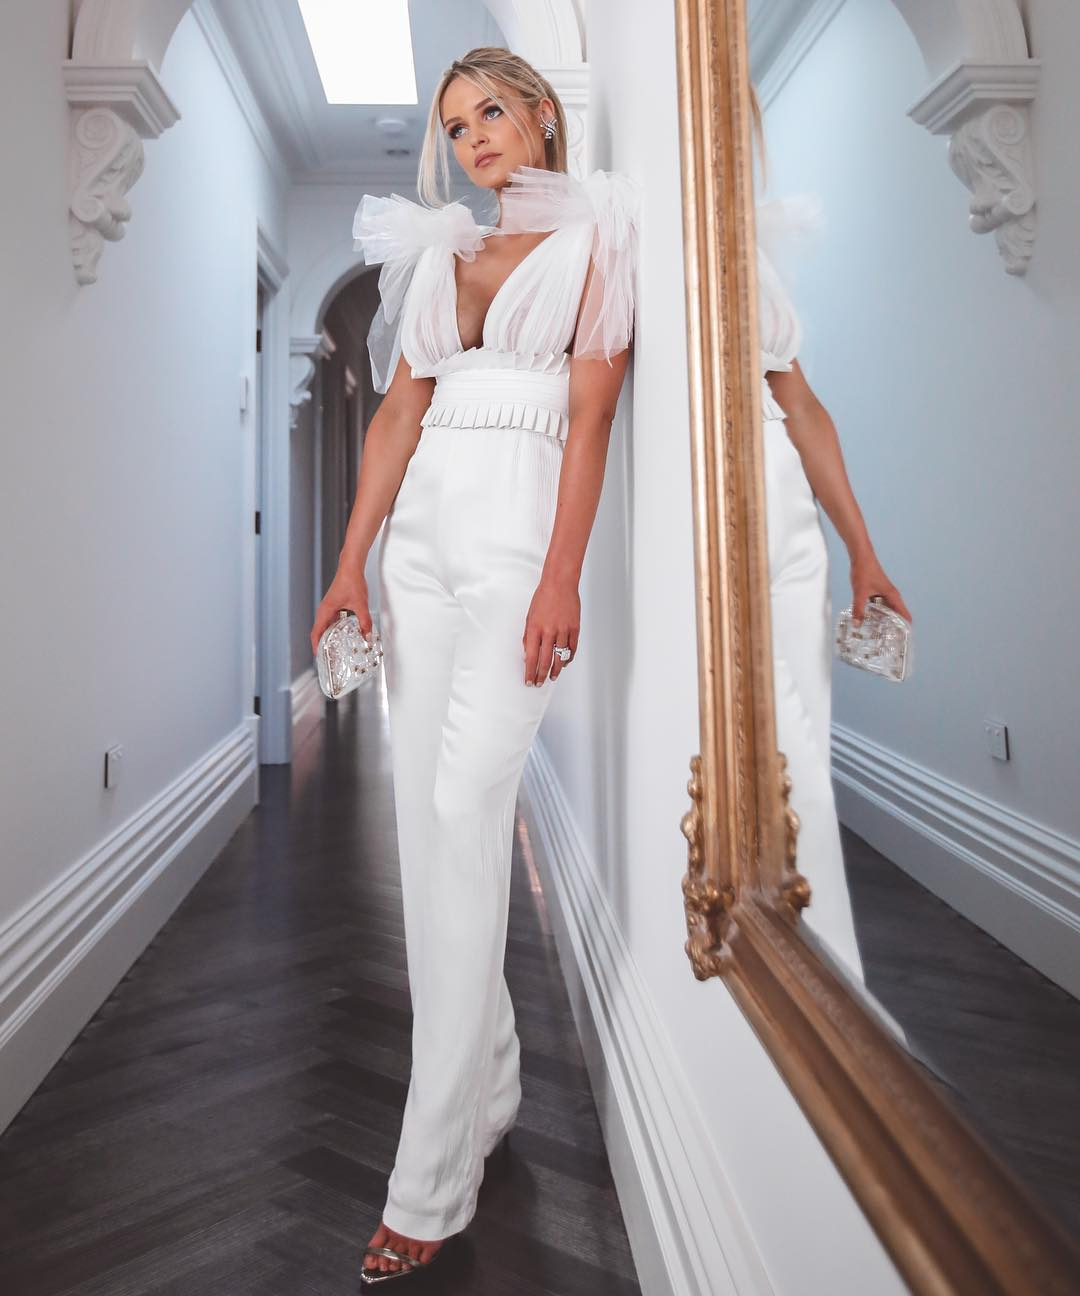 Deavogy 2019 New backless Women Sexy Bodycon mesh V neck Evening Party Bandage Jumpsuits Hot Sale-in Jumpsuits from Women's Clothing    1